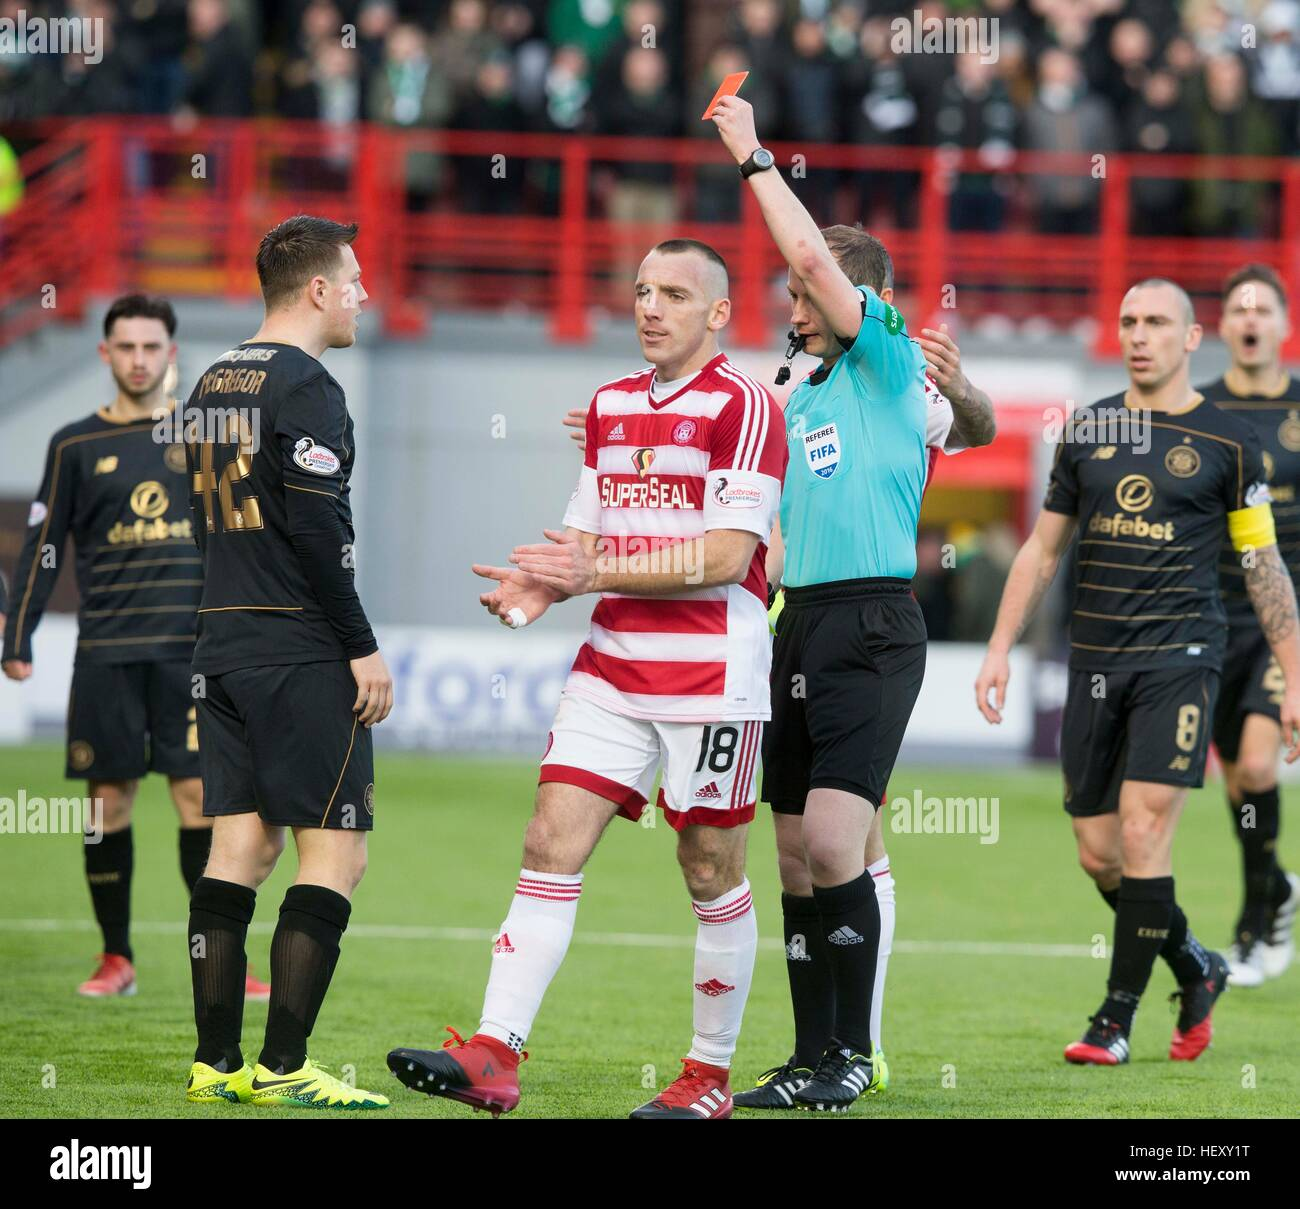 Celtic's Callum McGregor receives a red card during the Ladbrokes Scottish Premiership match at New Douglas - Stock Image